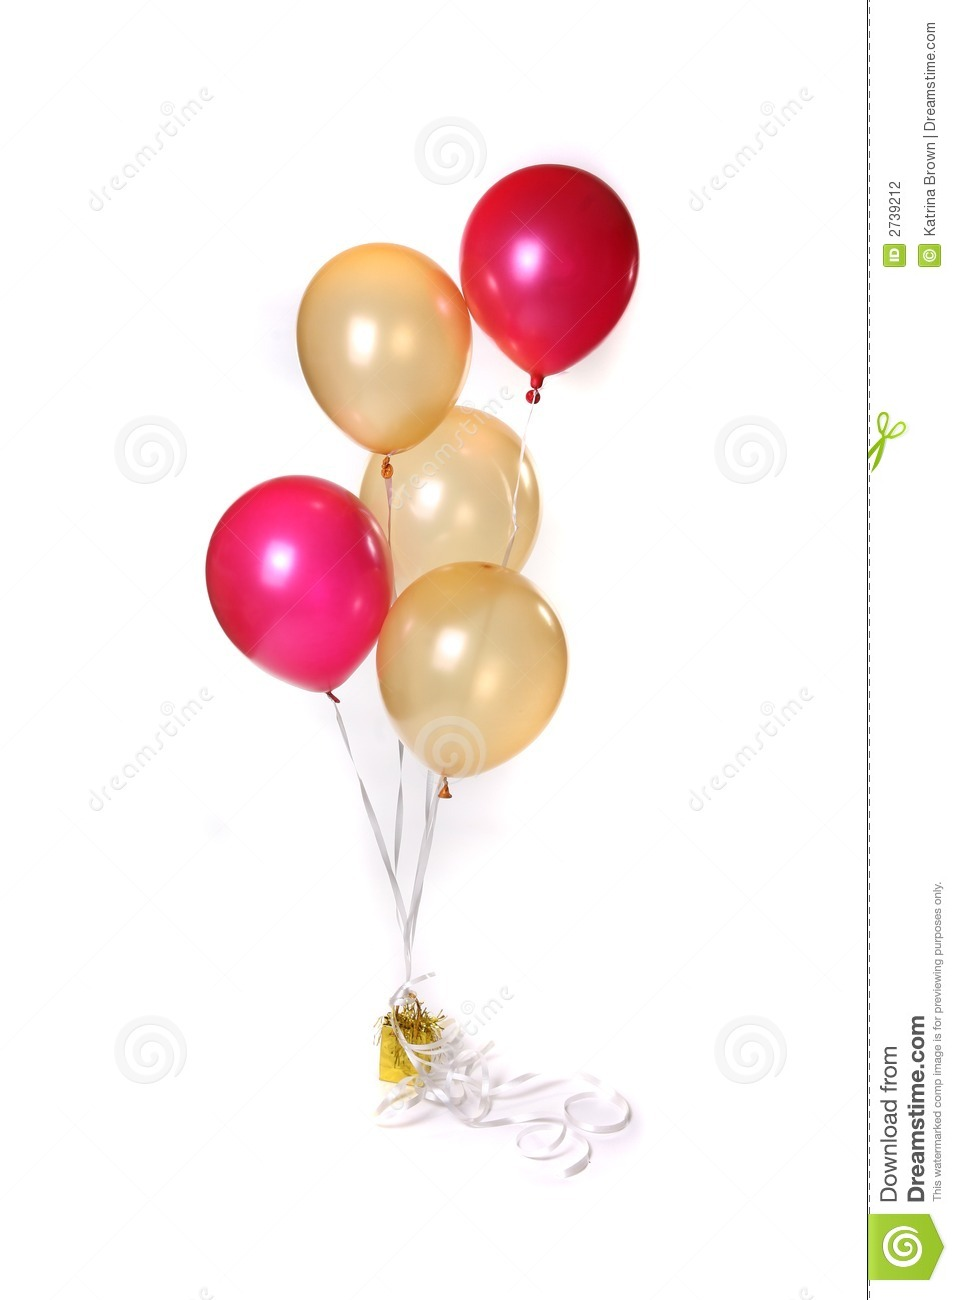 Balloons Tied Together Stock Photography Image 2739212